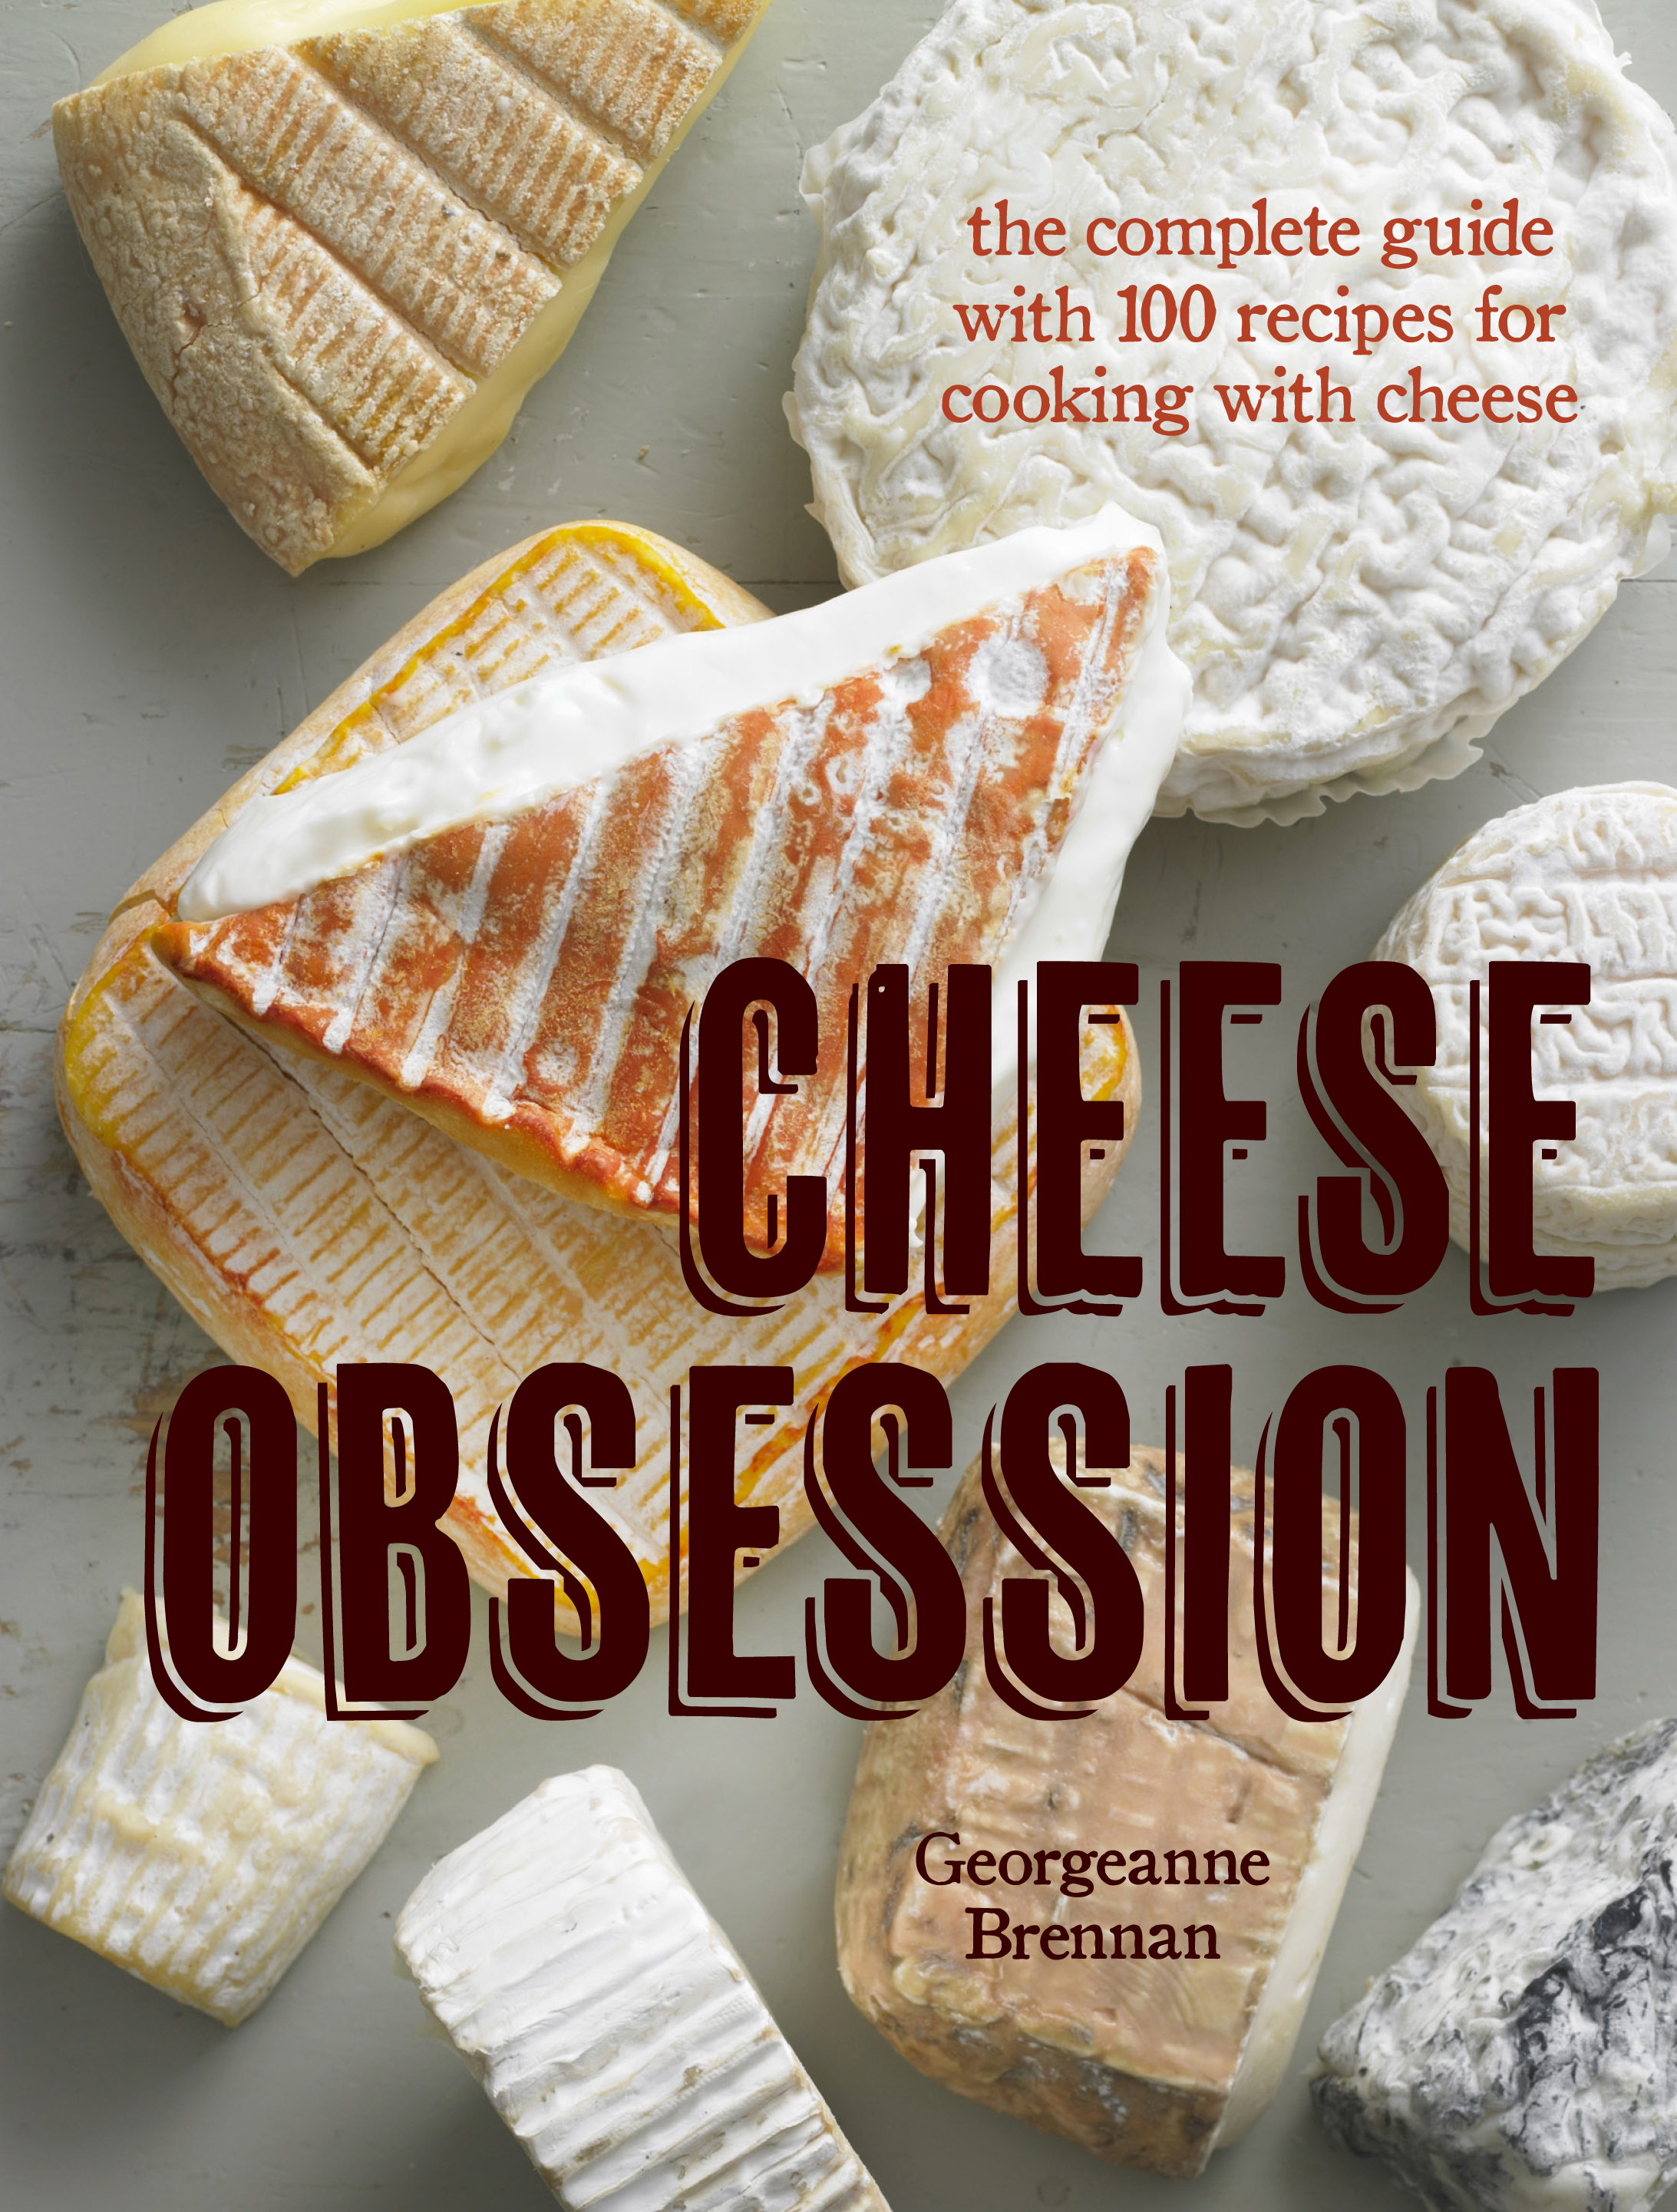 Cheese obsession book by georgeanne brennan official publisher cvr9781616284985 9781616284985 hr forumfinder Image collections